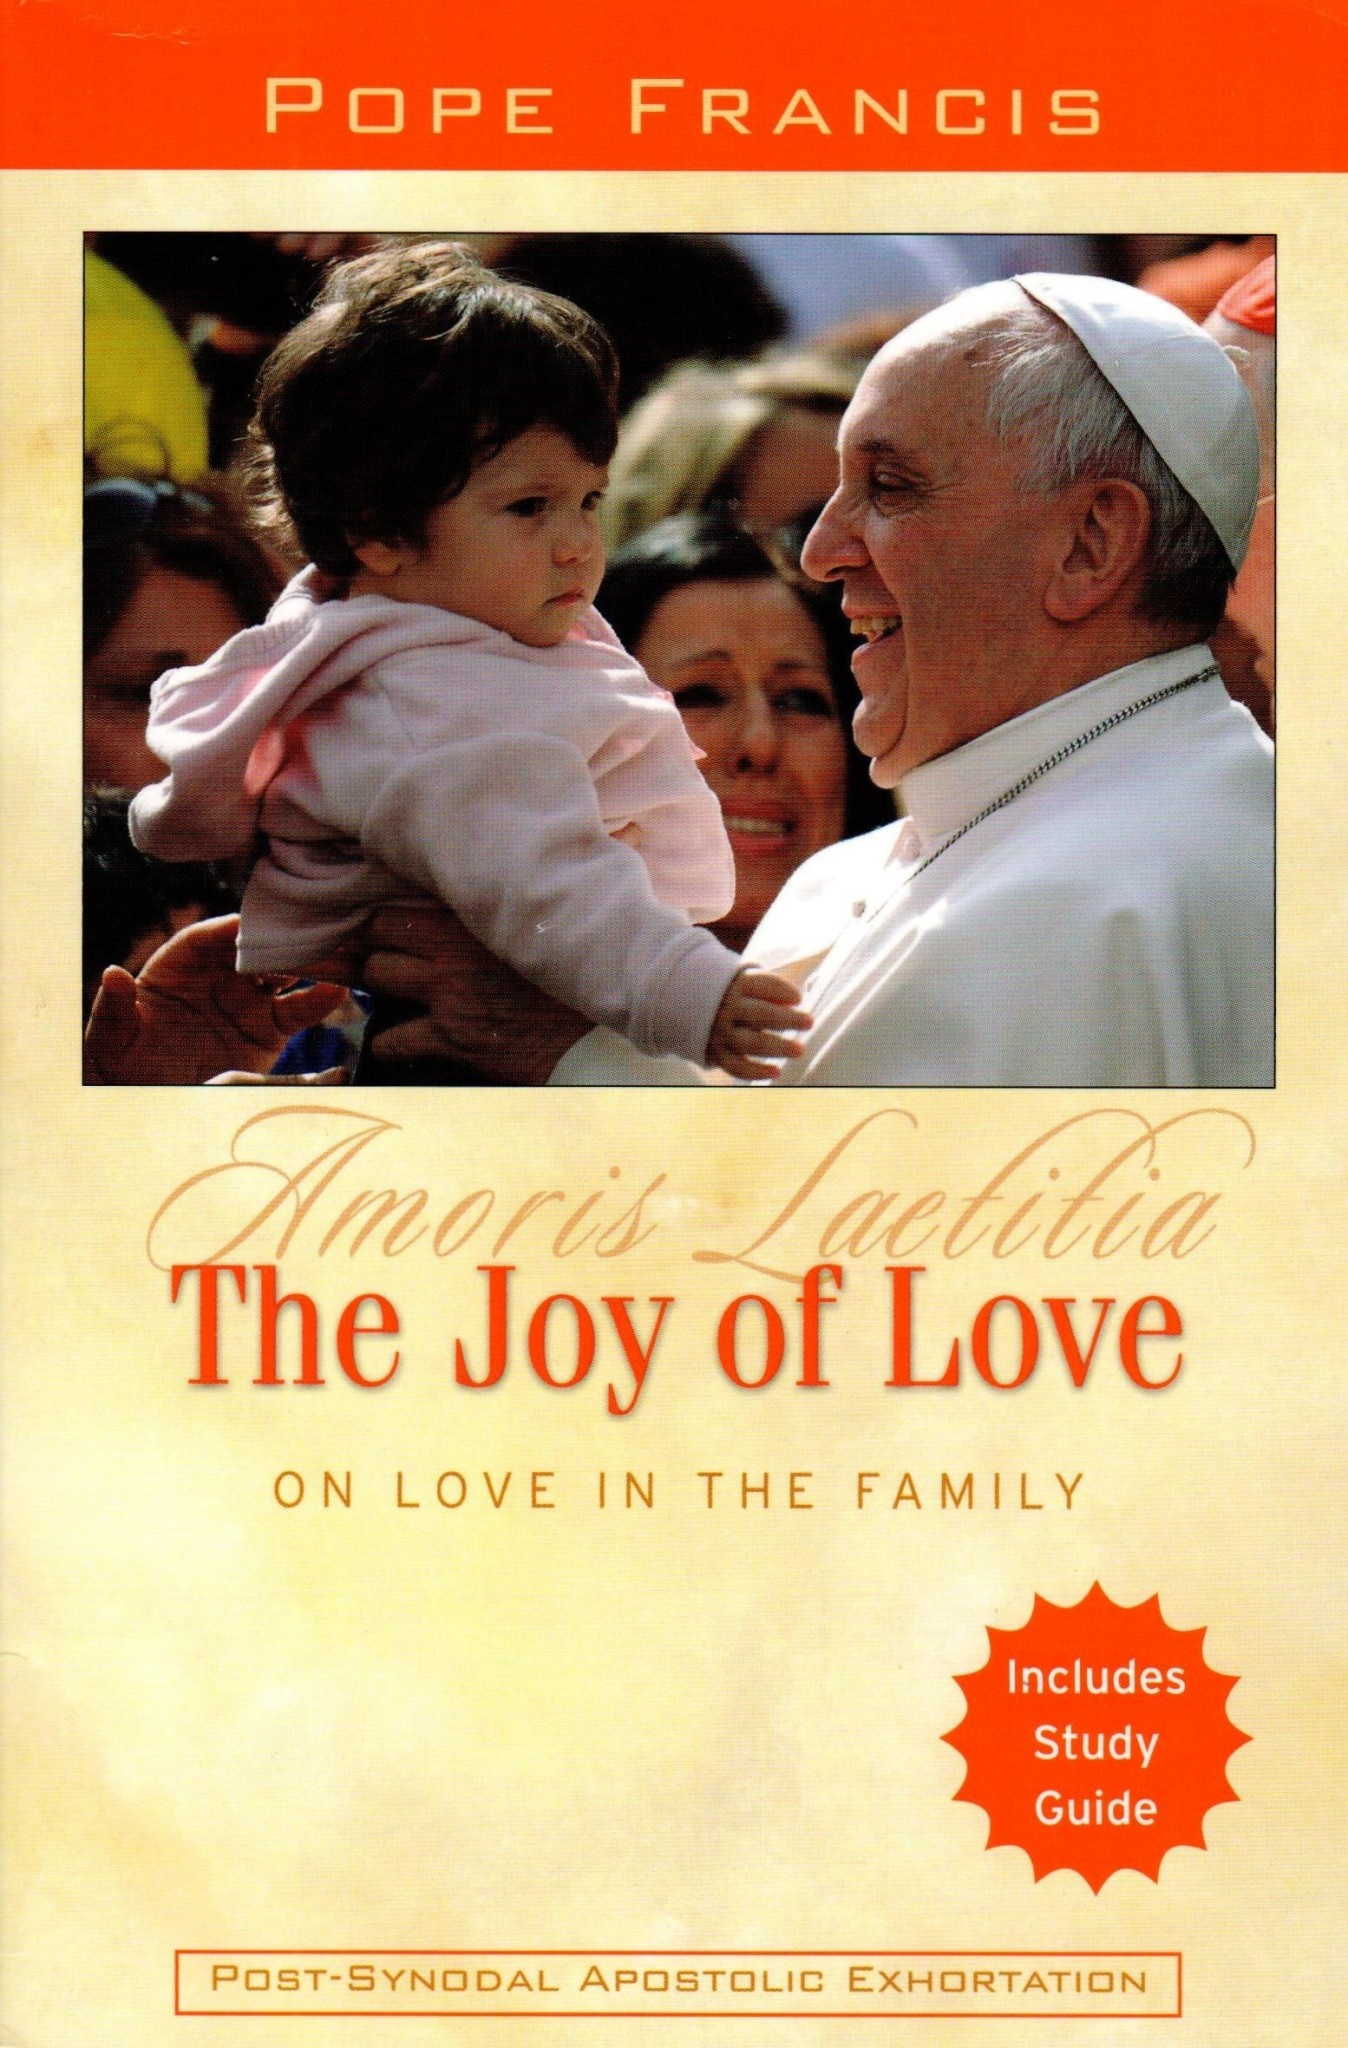 The Joy of Love - On Love in the Family: Amoris Laetitia